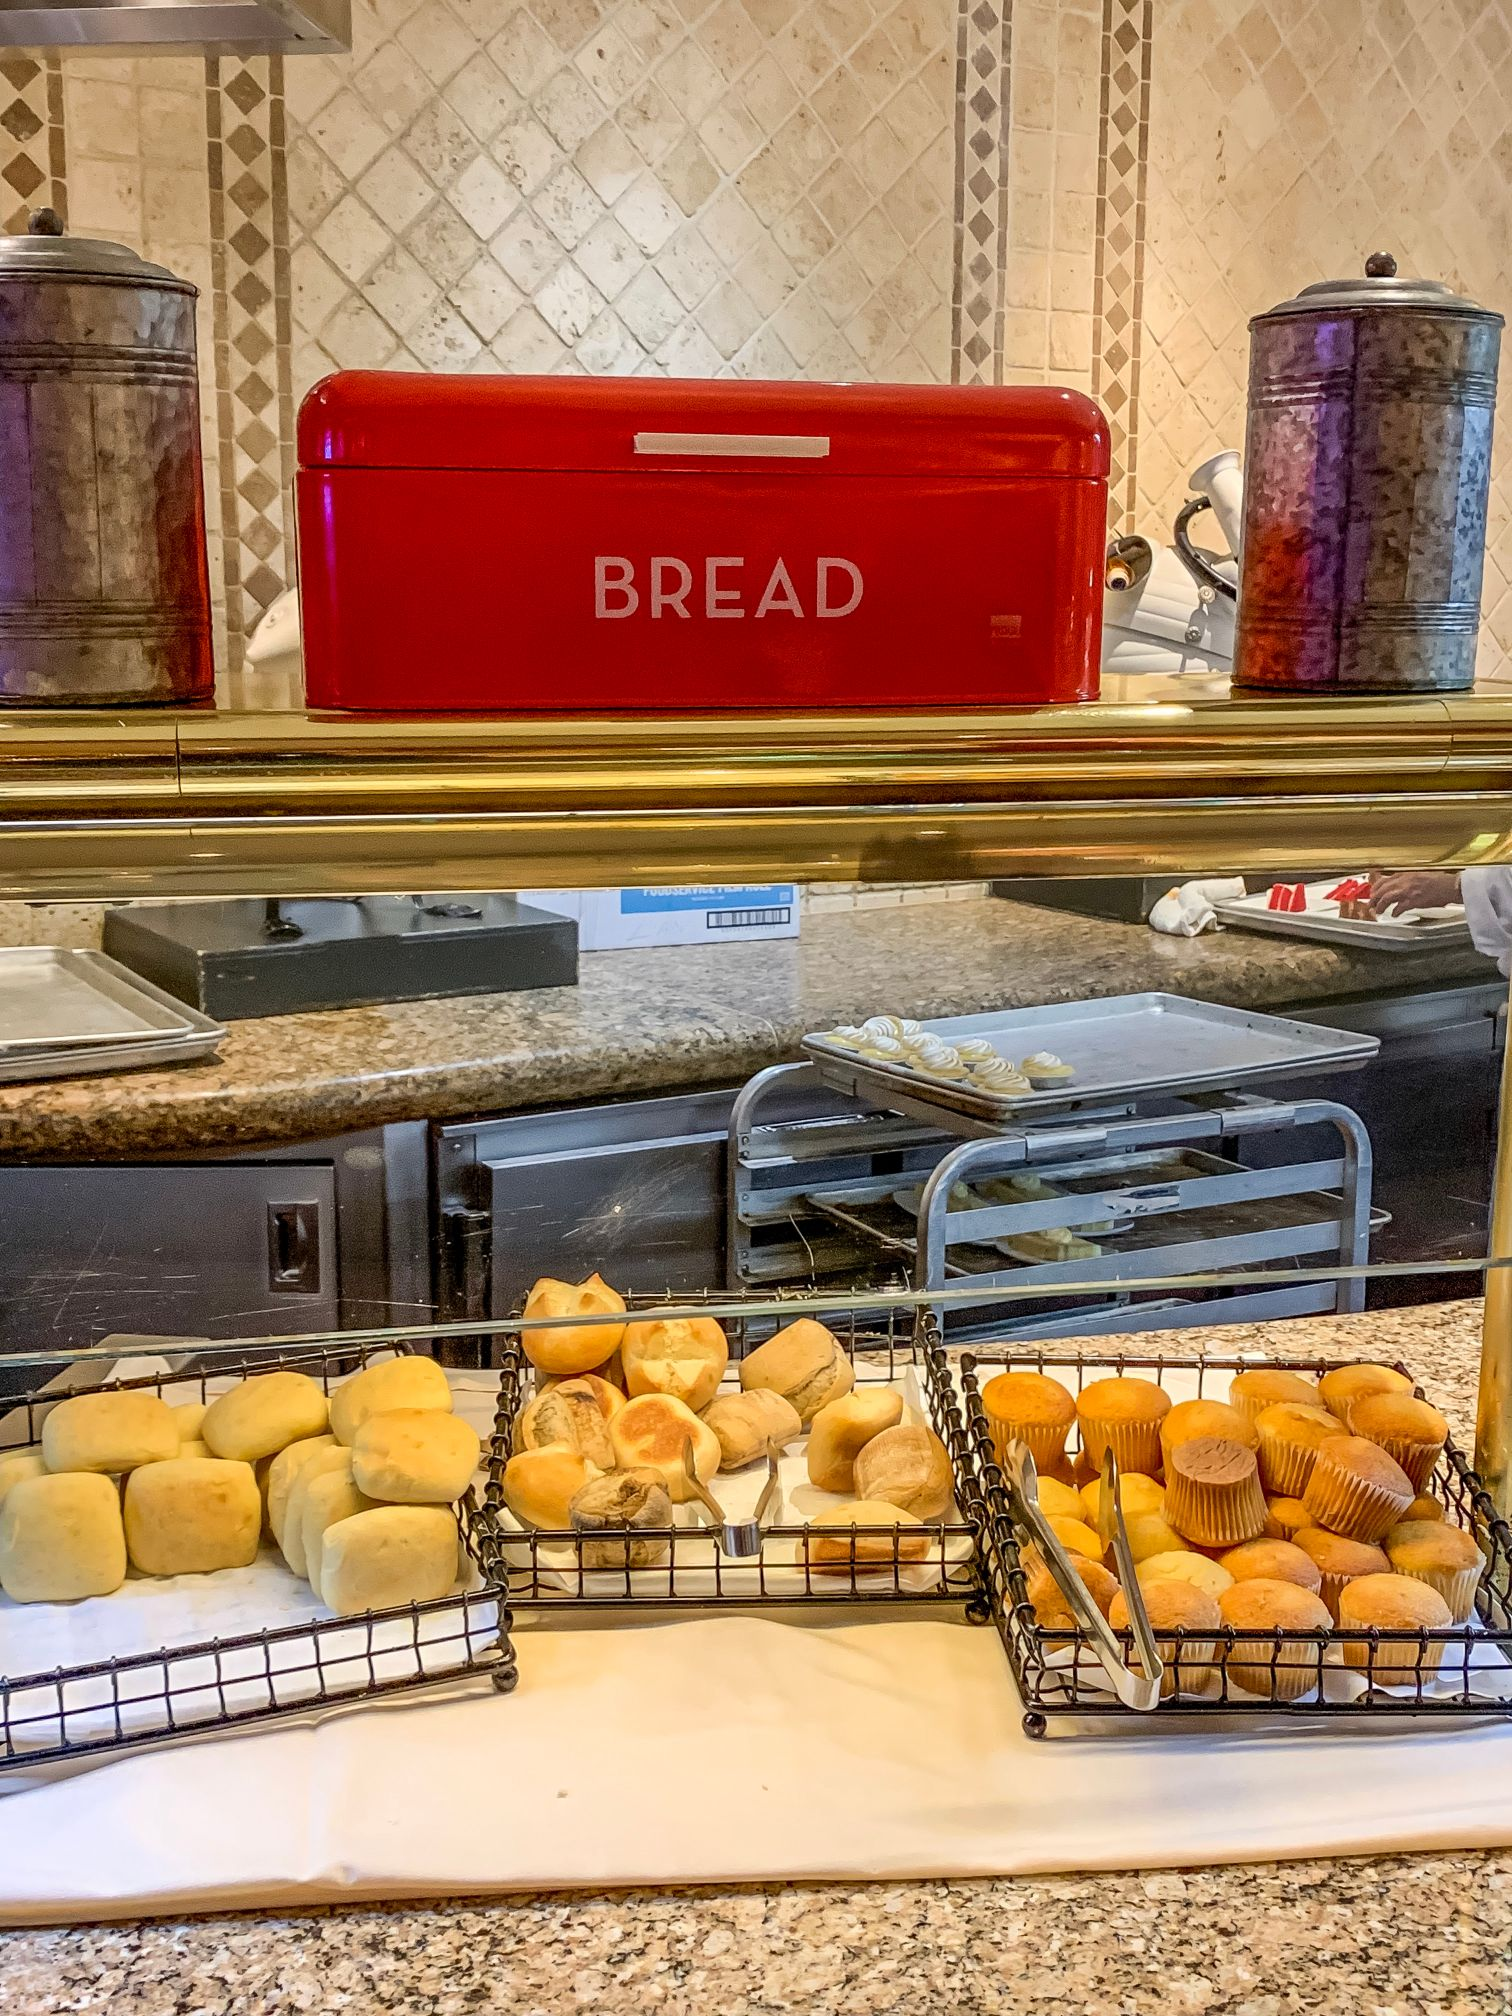 An image of the bread station at the Beau Rivage buffet